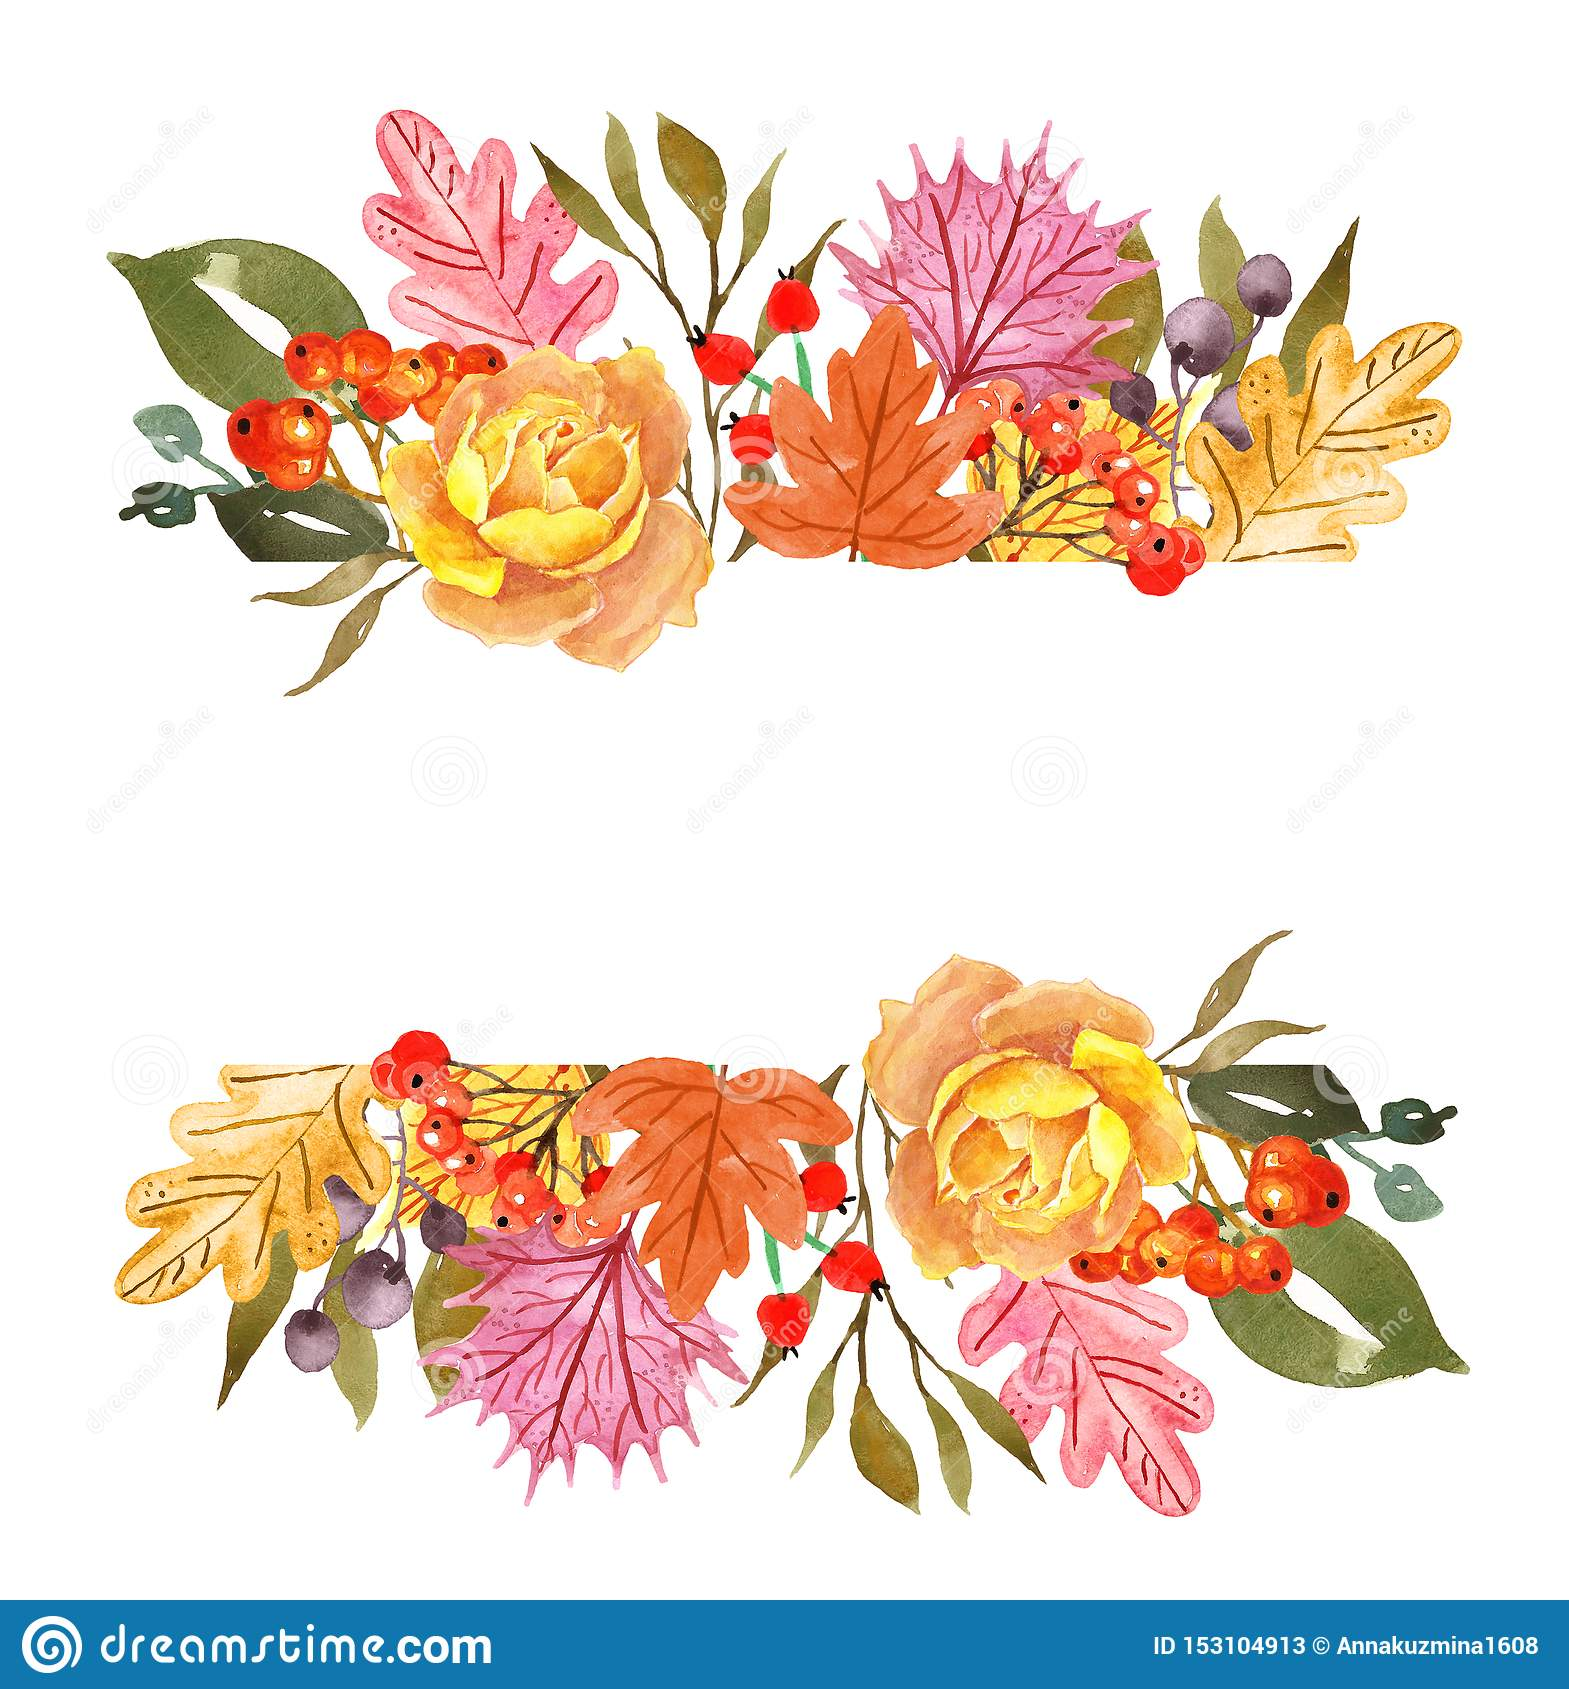 Watercolor autumn leaves and plants banner, isolated on white background. Fall floral border for cards, invitations.